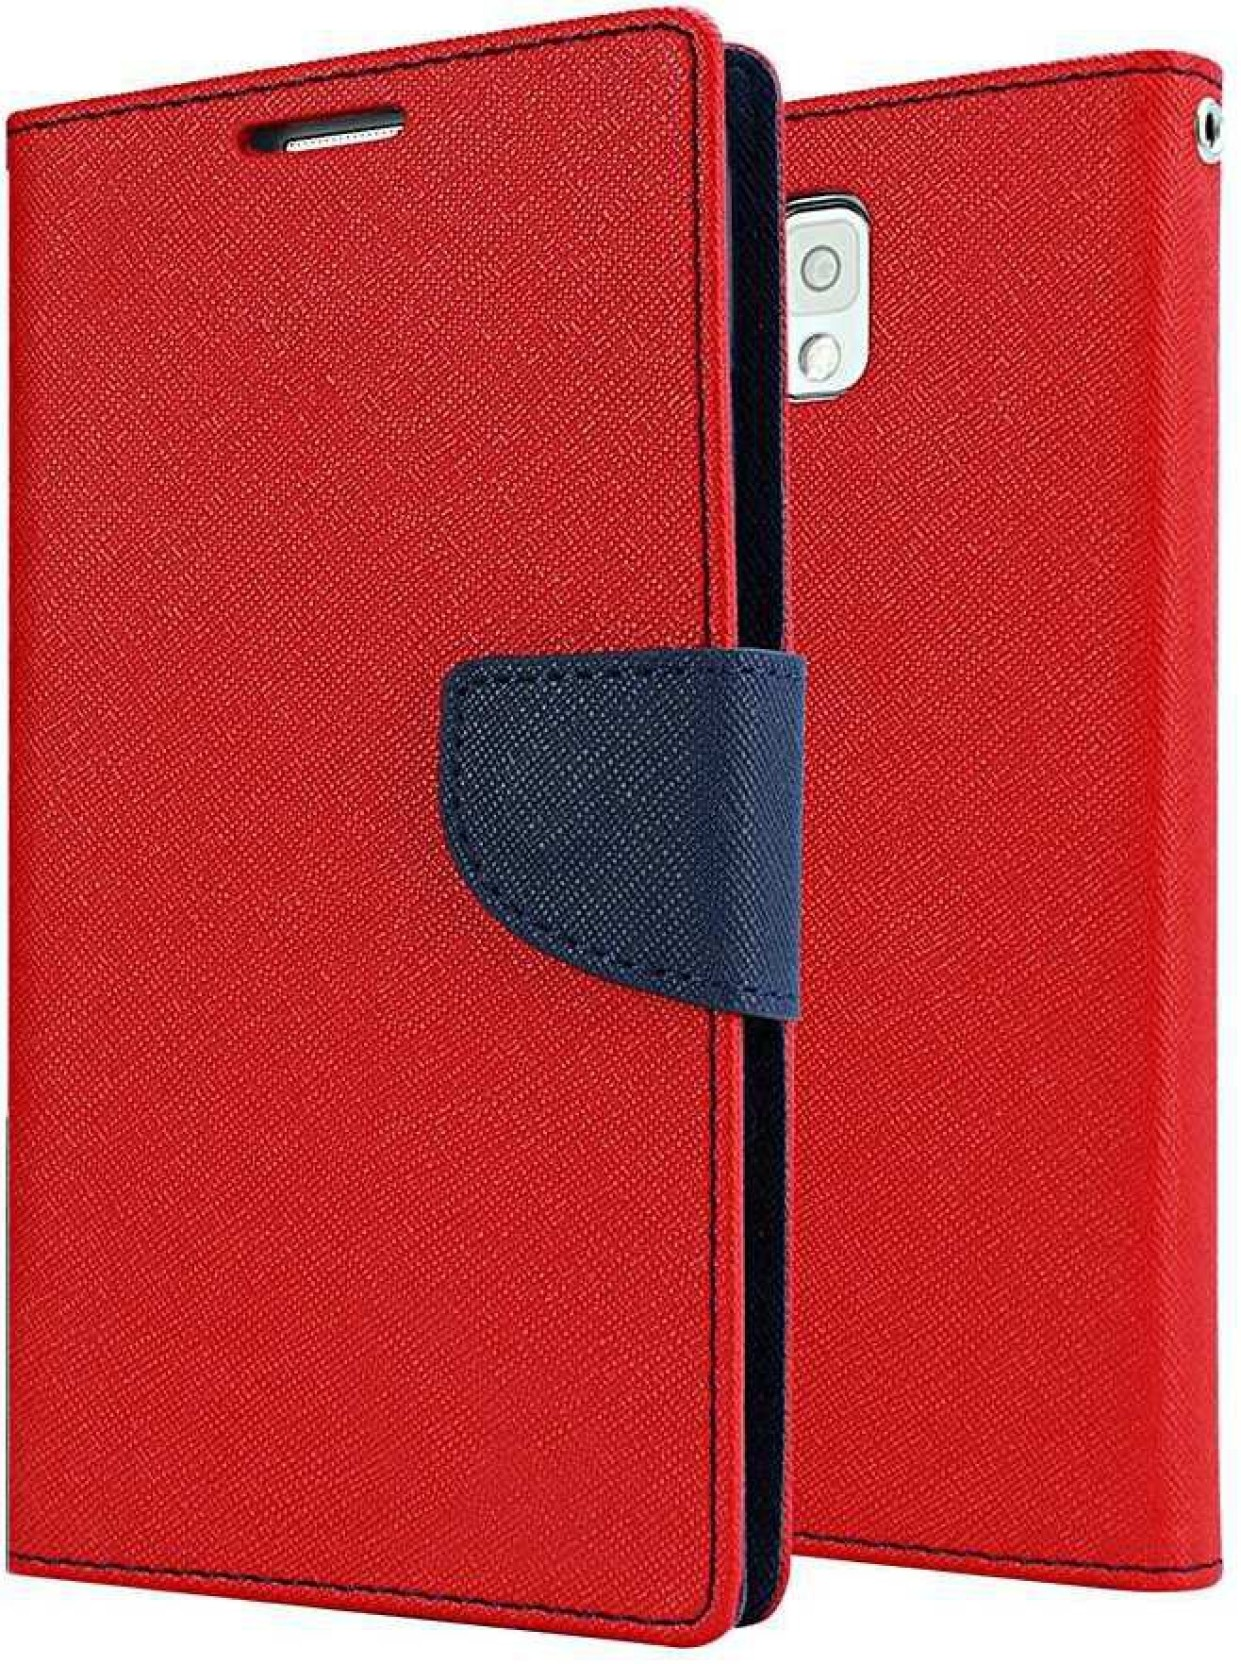 Coverage Flip Cover For Lenovo Vibe K5 Plus Goospery Xiaomi Note 2 Canvas Diary Case Red On Offer